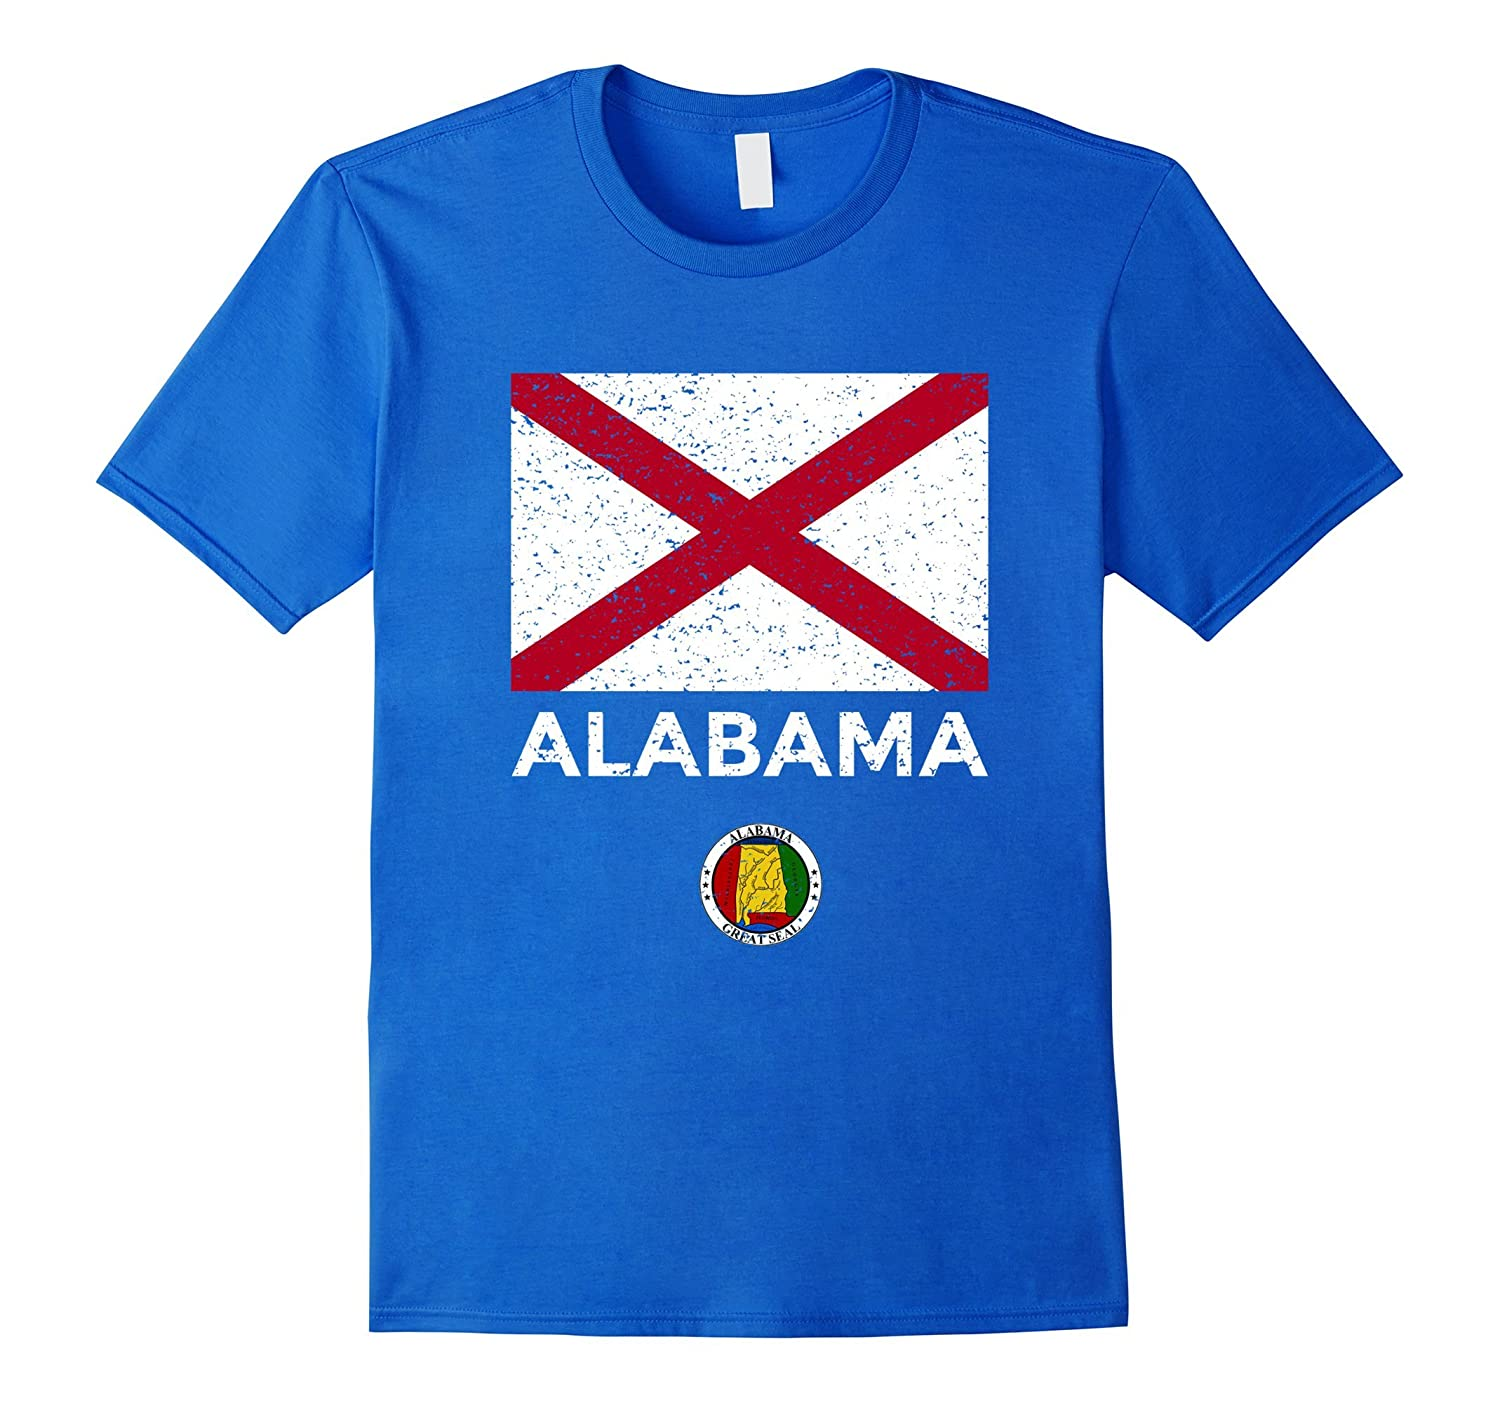 Alabama State Flag T-Shirt with Seal - Vintage Distressed-AZP